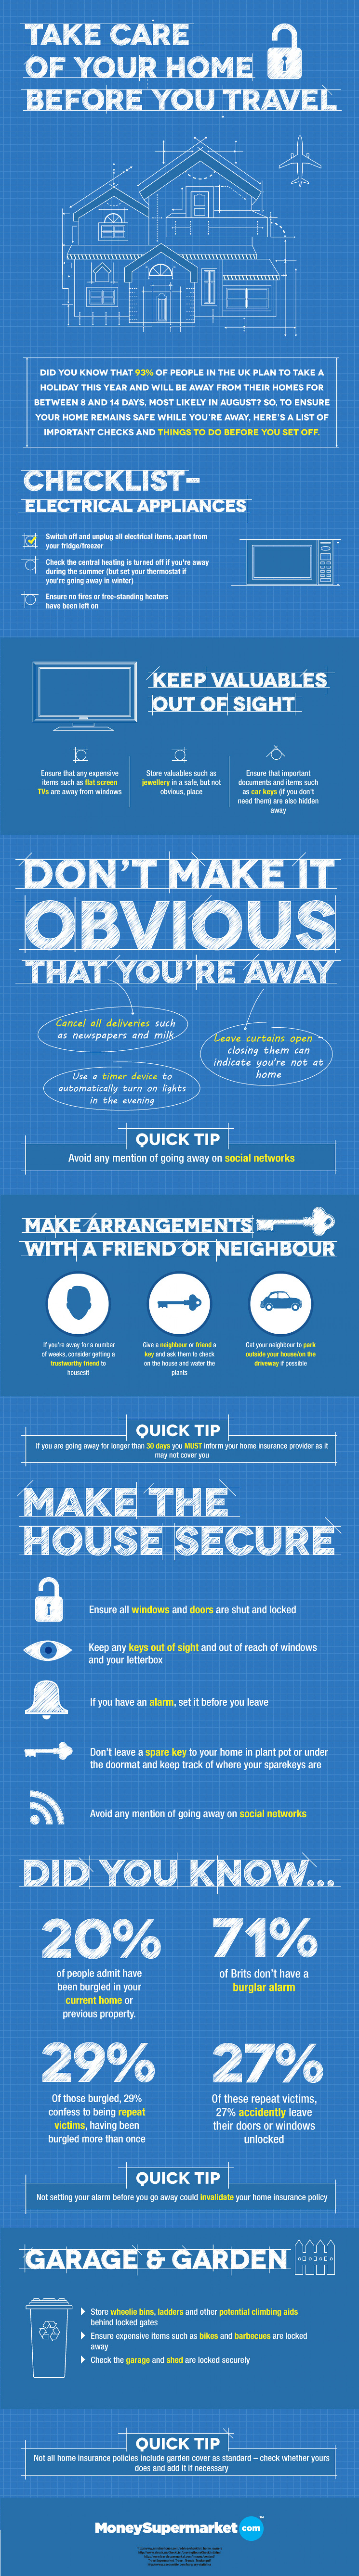 Take Care of Your Home Before you Travel Infographic